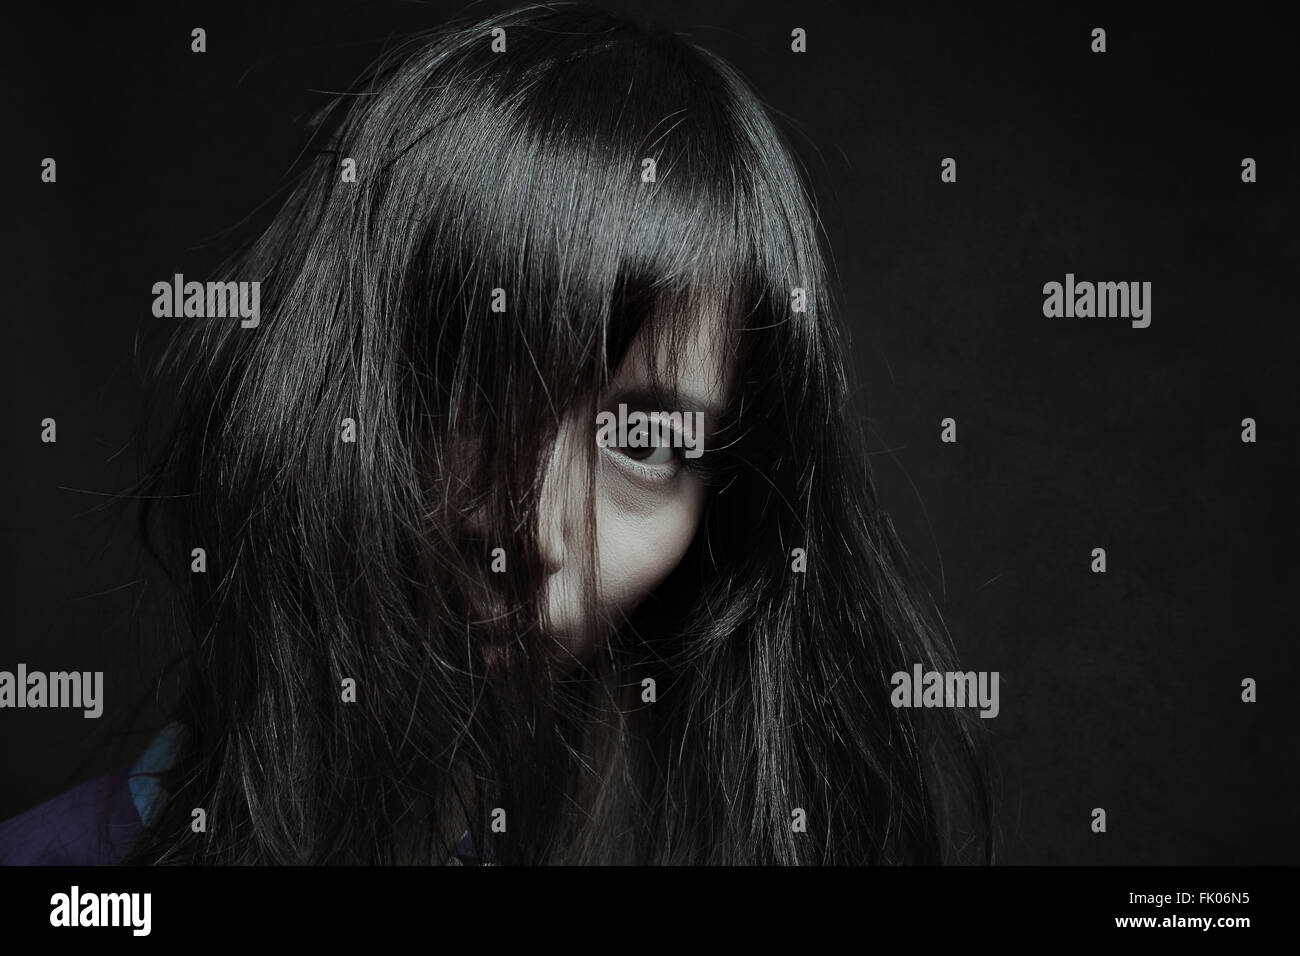 Dark portrait of a pale japanese woman. Halloween and horror - Stock Image